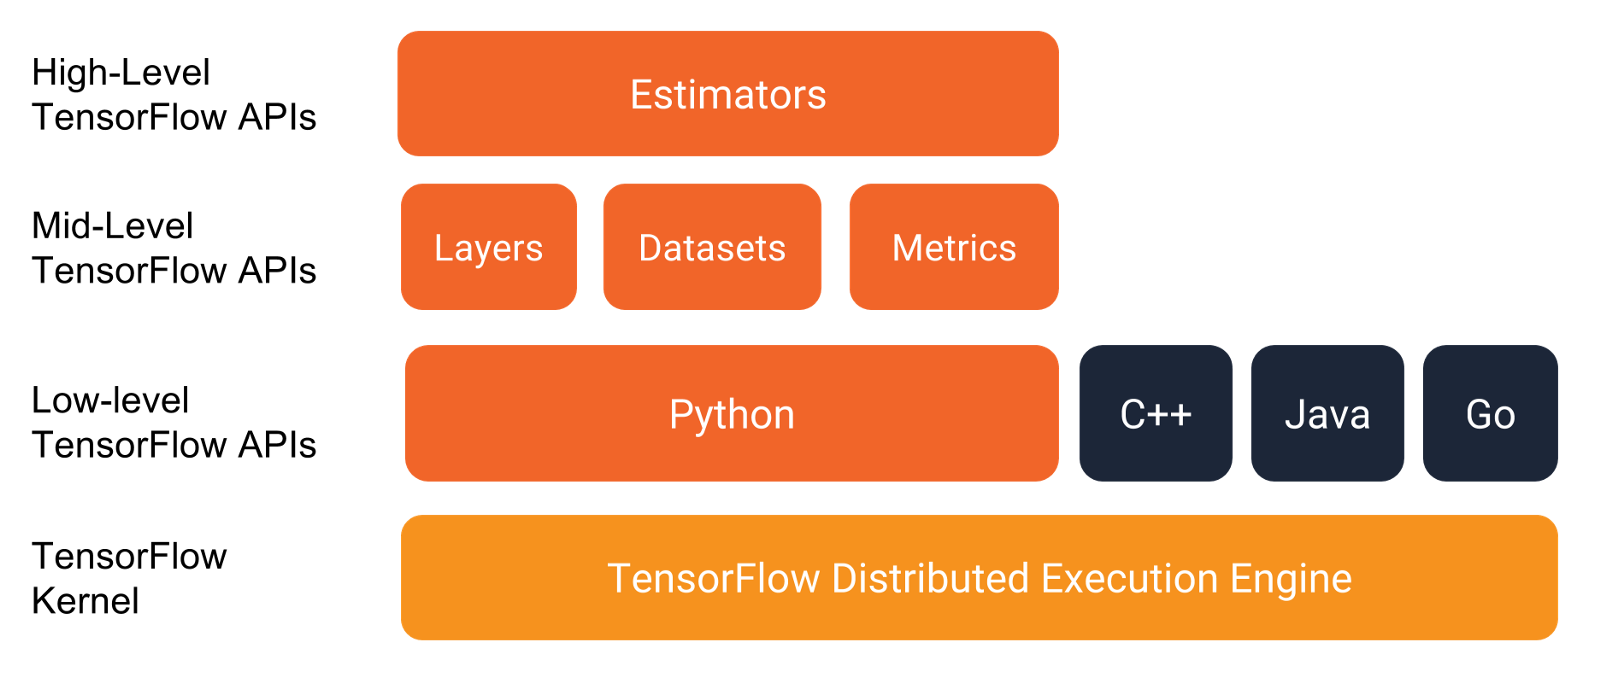 Overview of how the Estimator API provides an abstraction over Layers, Datasets, and Metrics.